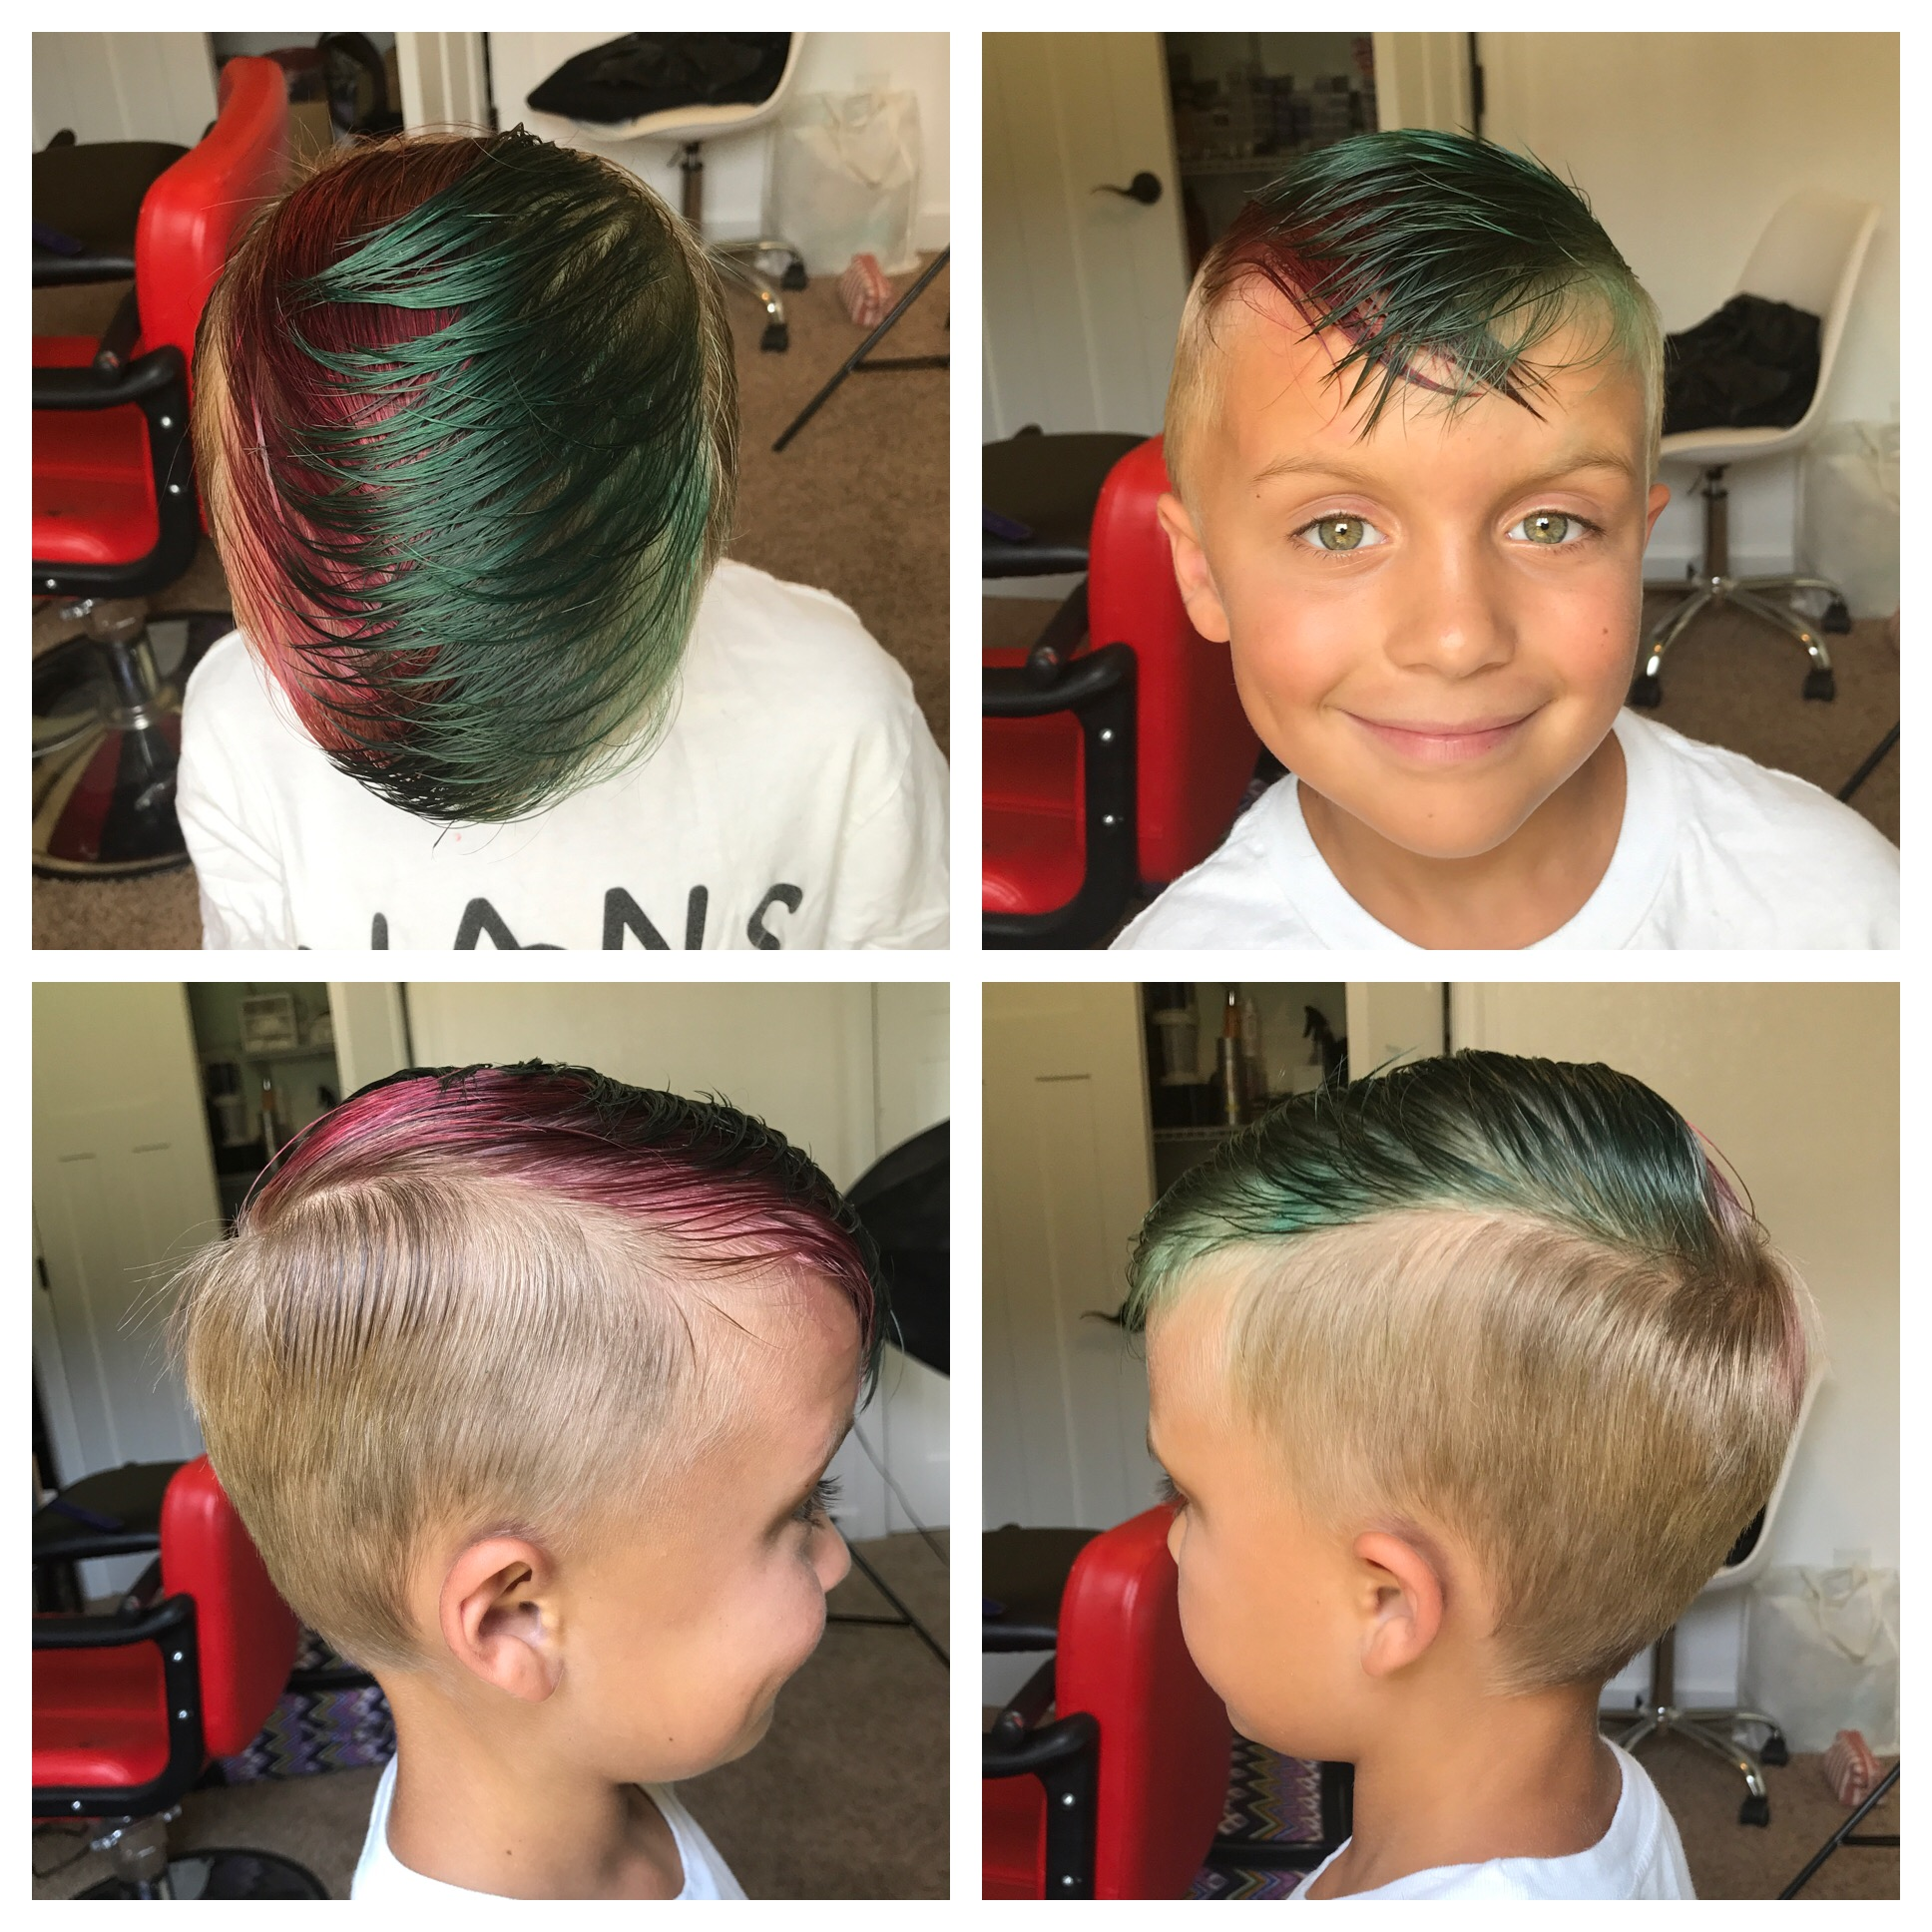 Fashion Color - Children's haircut